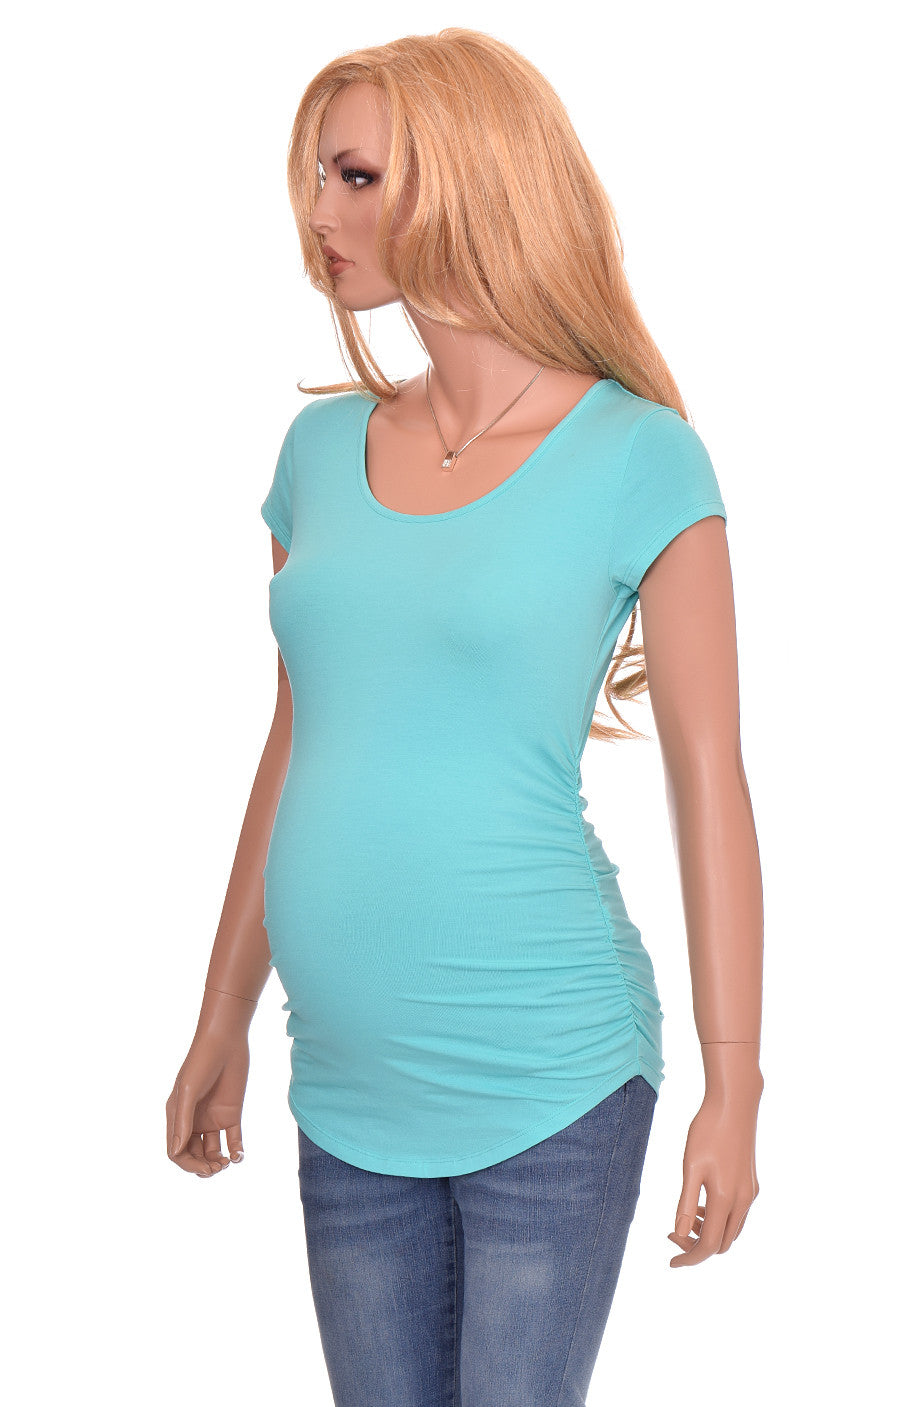 Wholesale maternity shirts tshirts blanks teal blue short sleeve cotton modal